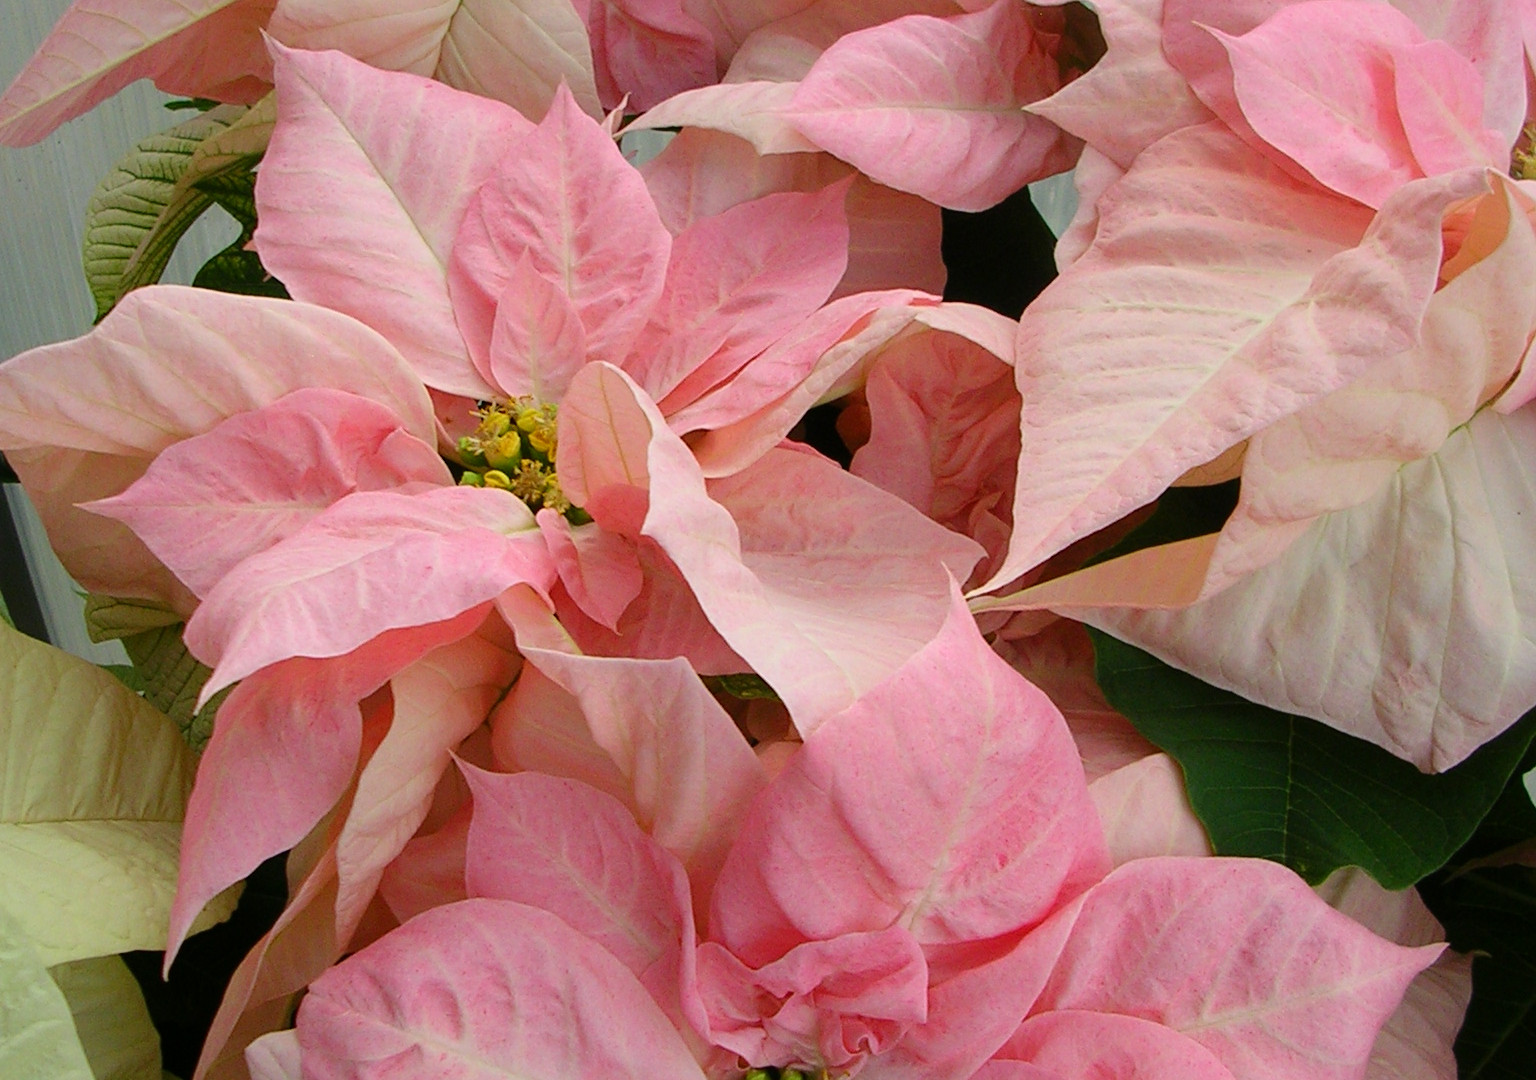 Visions of Grandeur Poinsettia